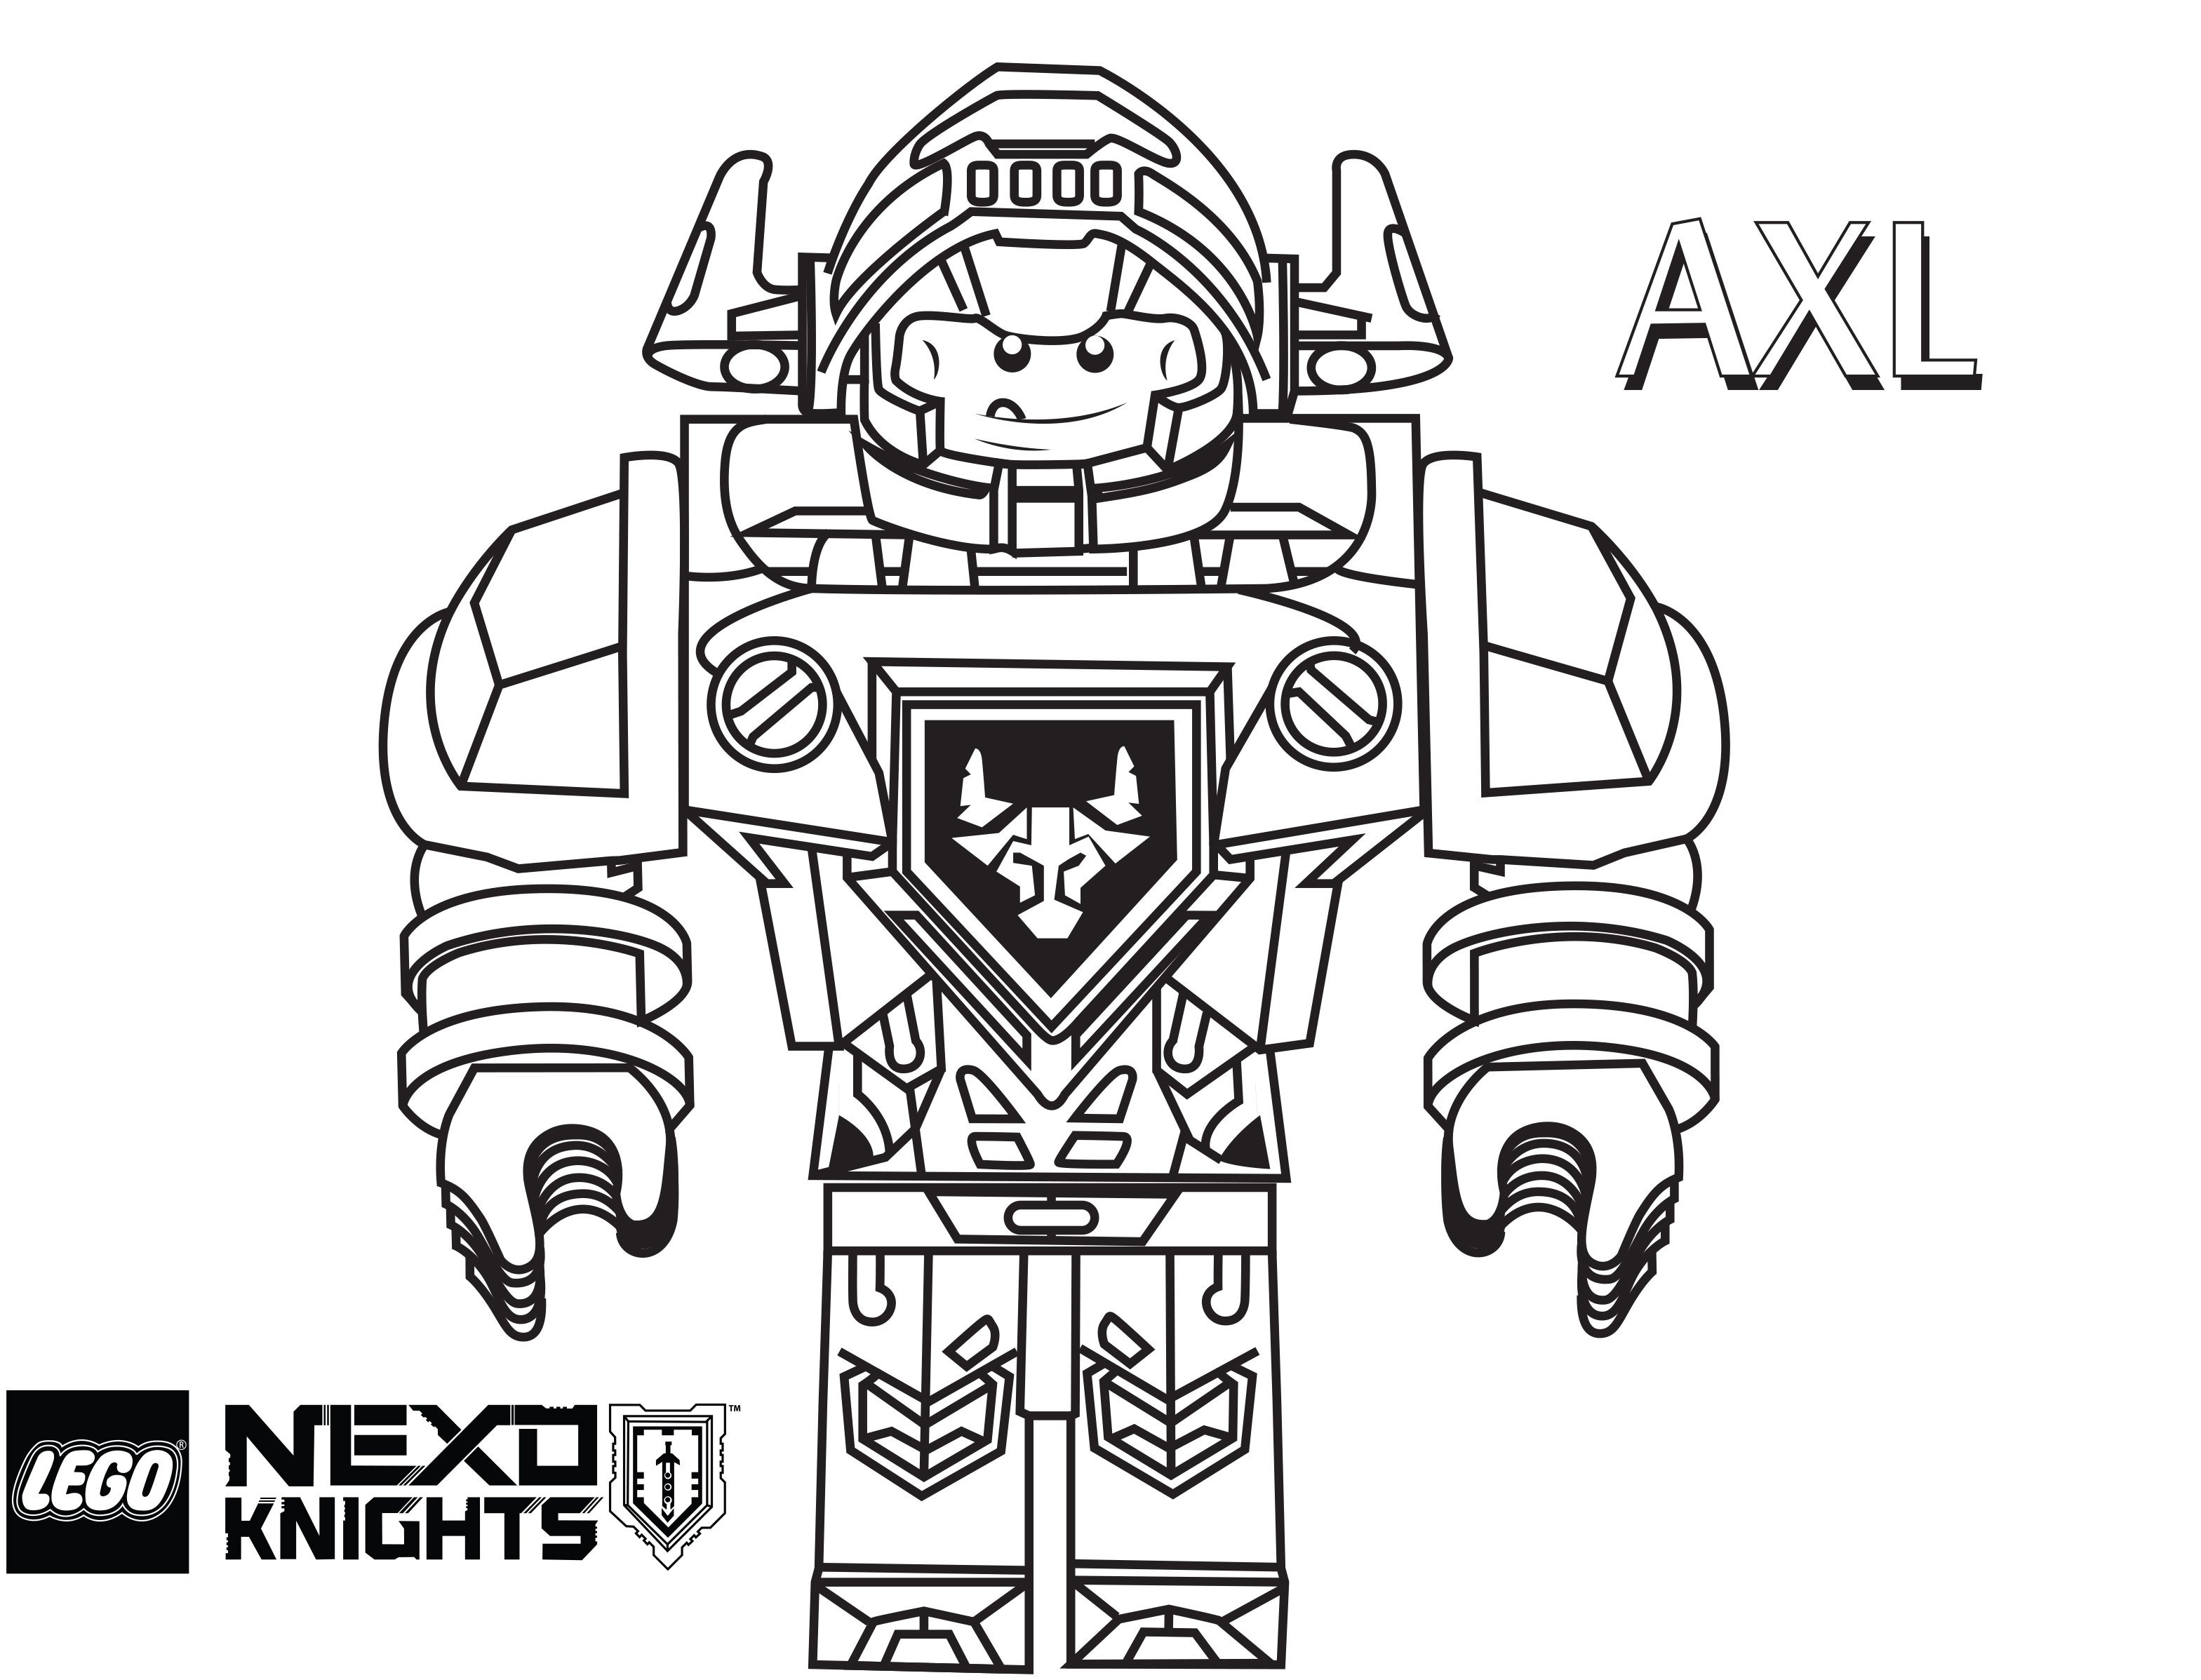 Lego Knights Coloring Pages. Lego Nexo Knights Coloring Pages Free - Free Printable Pictures Of Knights